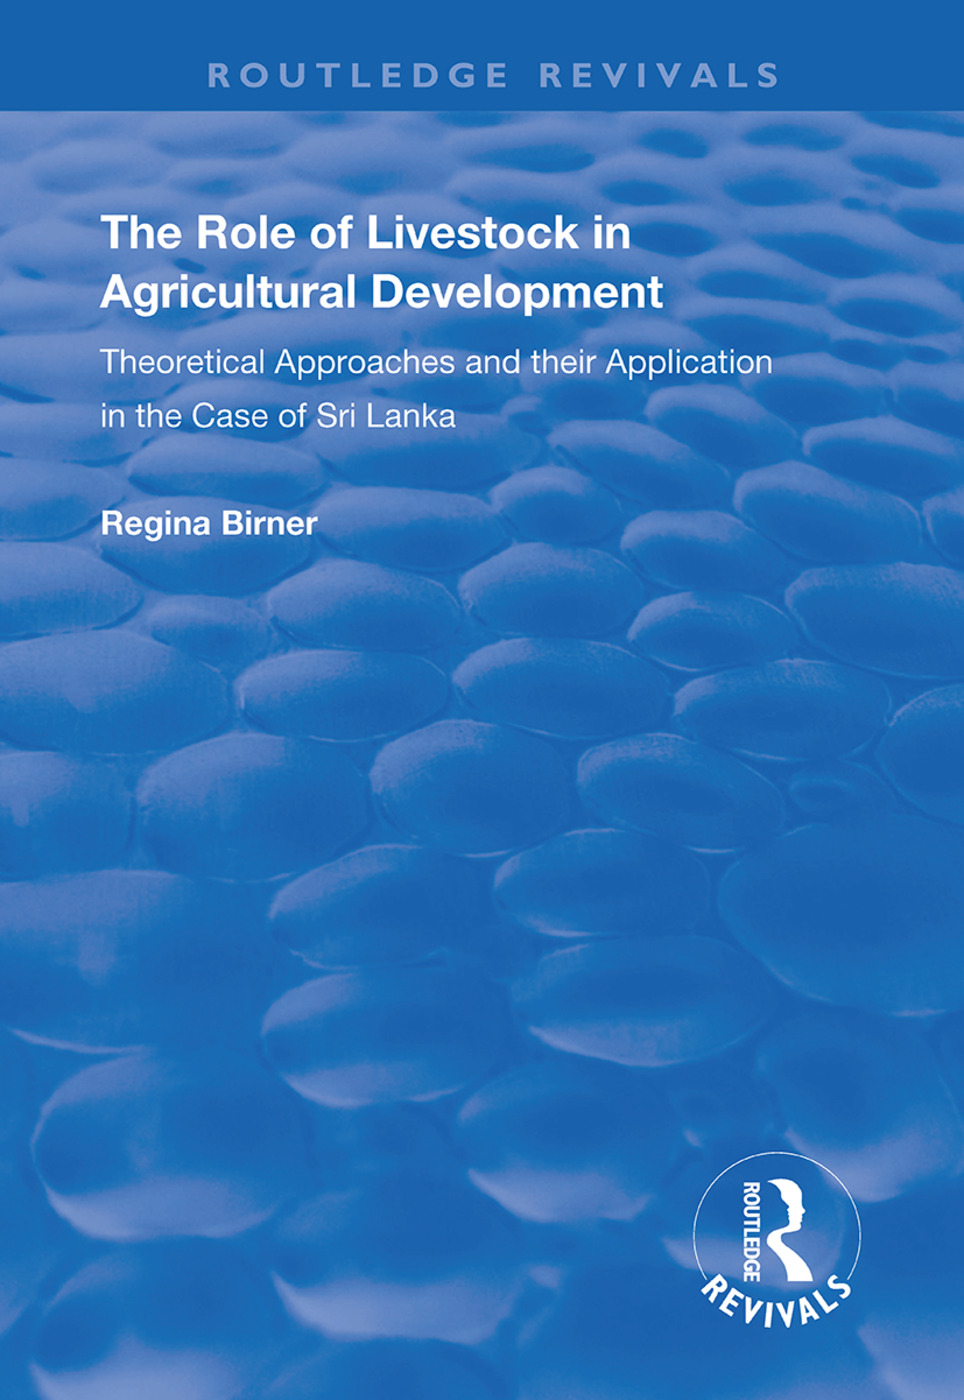 The Role of Livestock in Agricultural Development: Theoretical Approaches and Their Application in the Case of Sri Lanka book cover